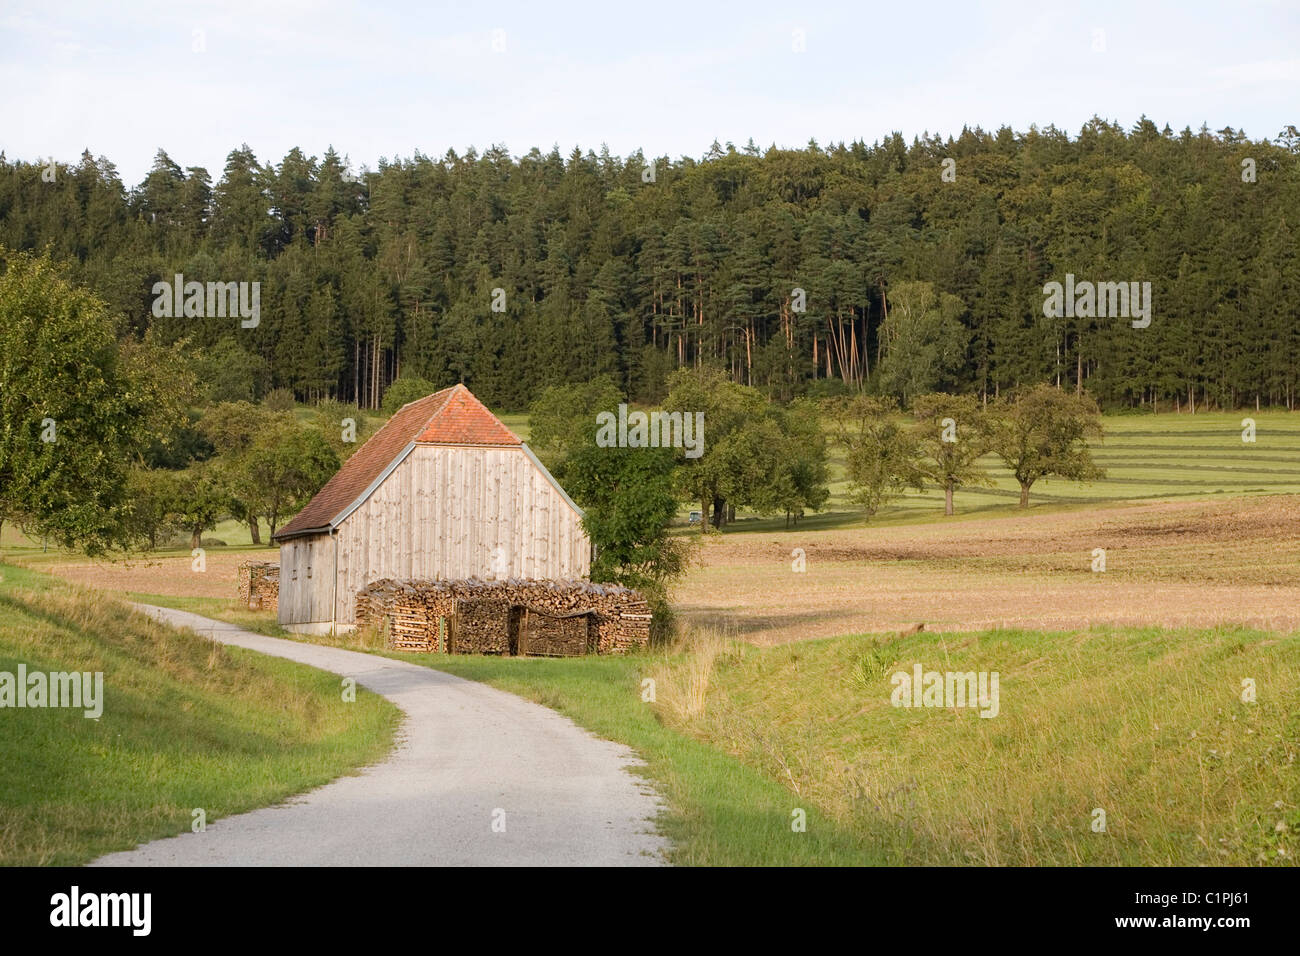 Germany, Bavaria, barn on country road - Stock Image